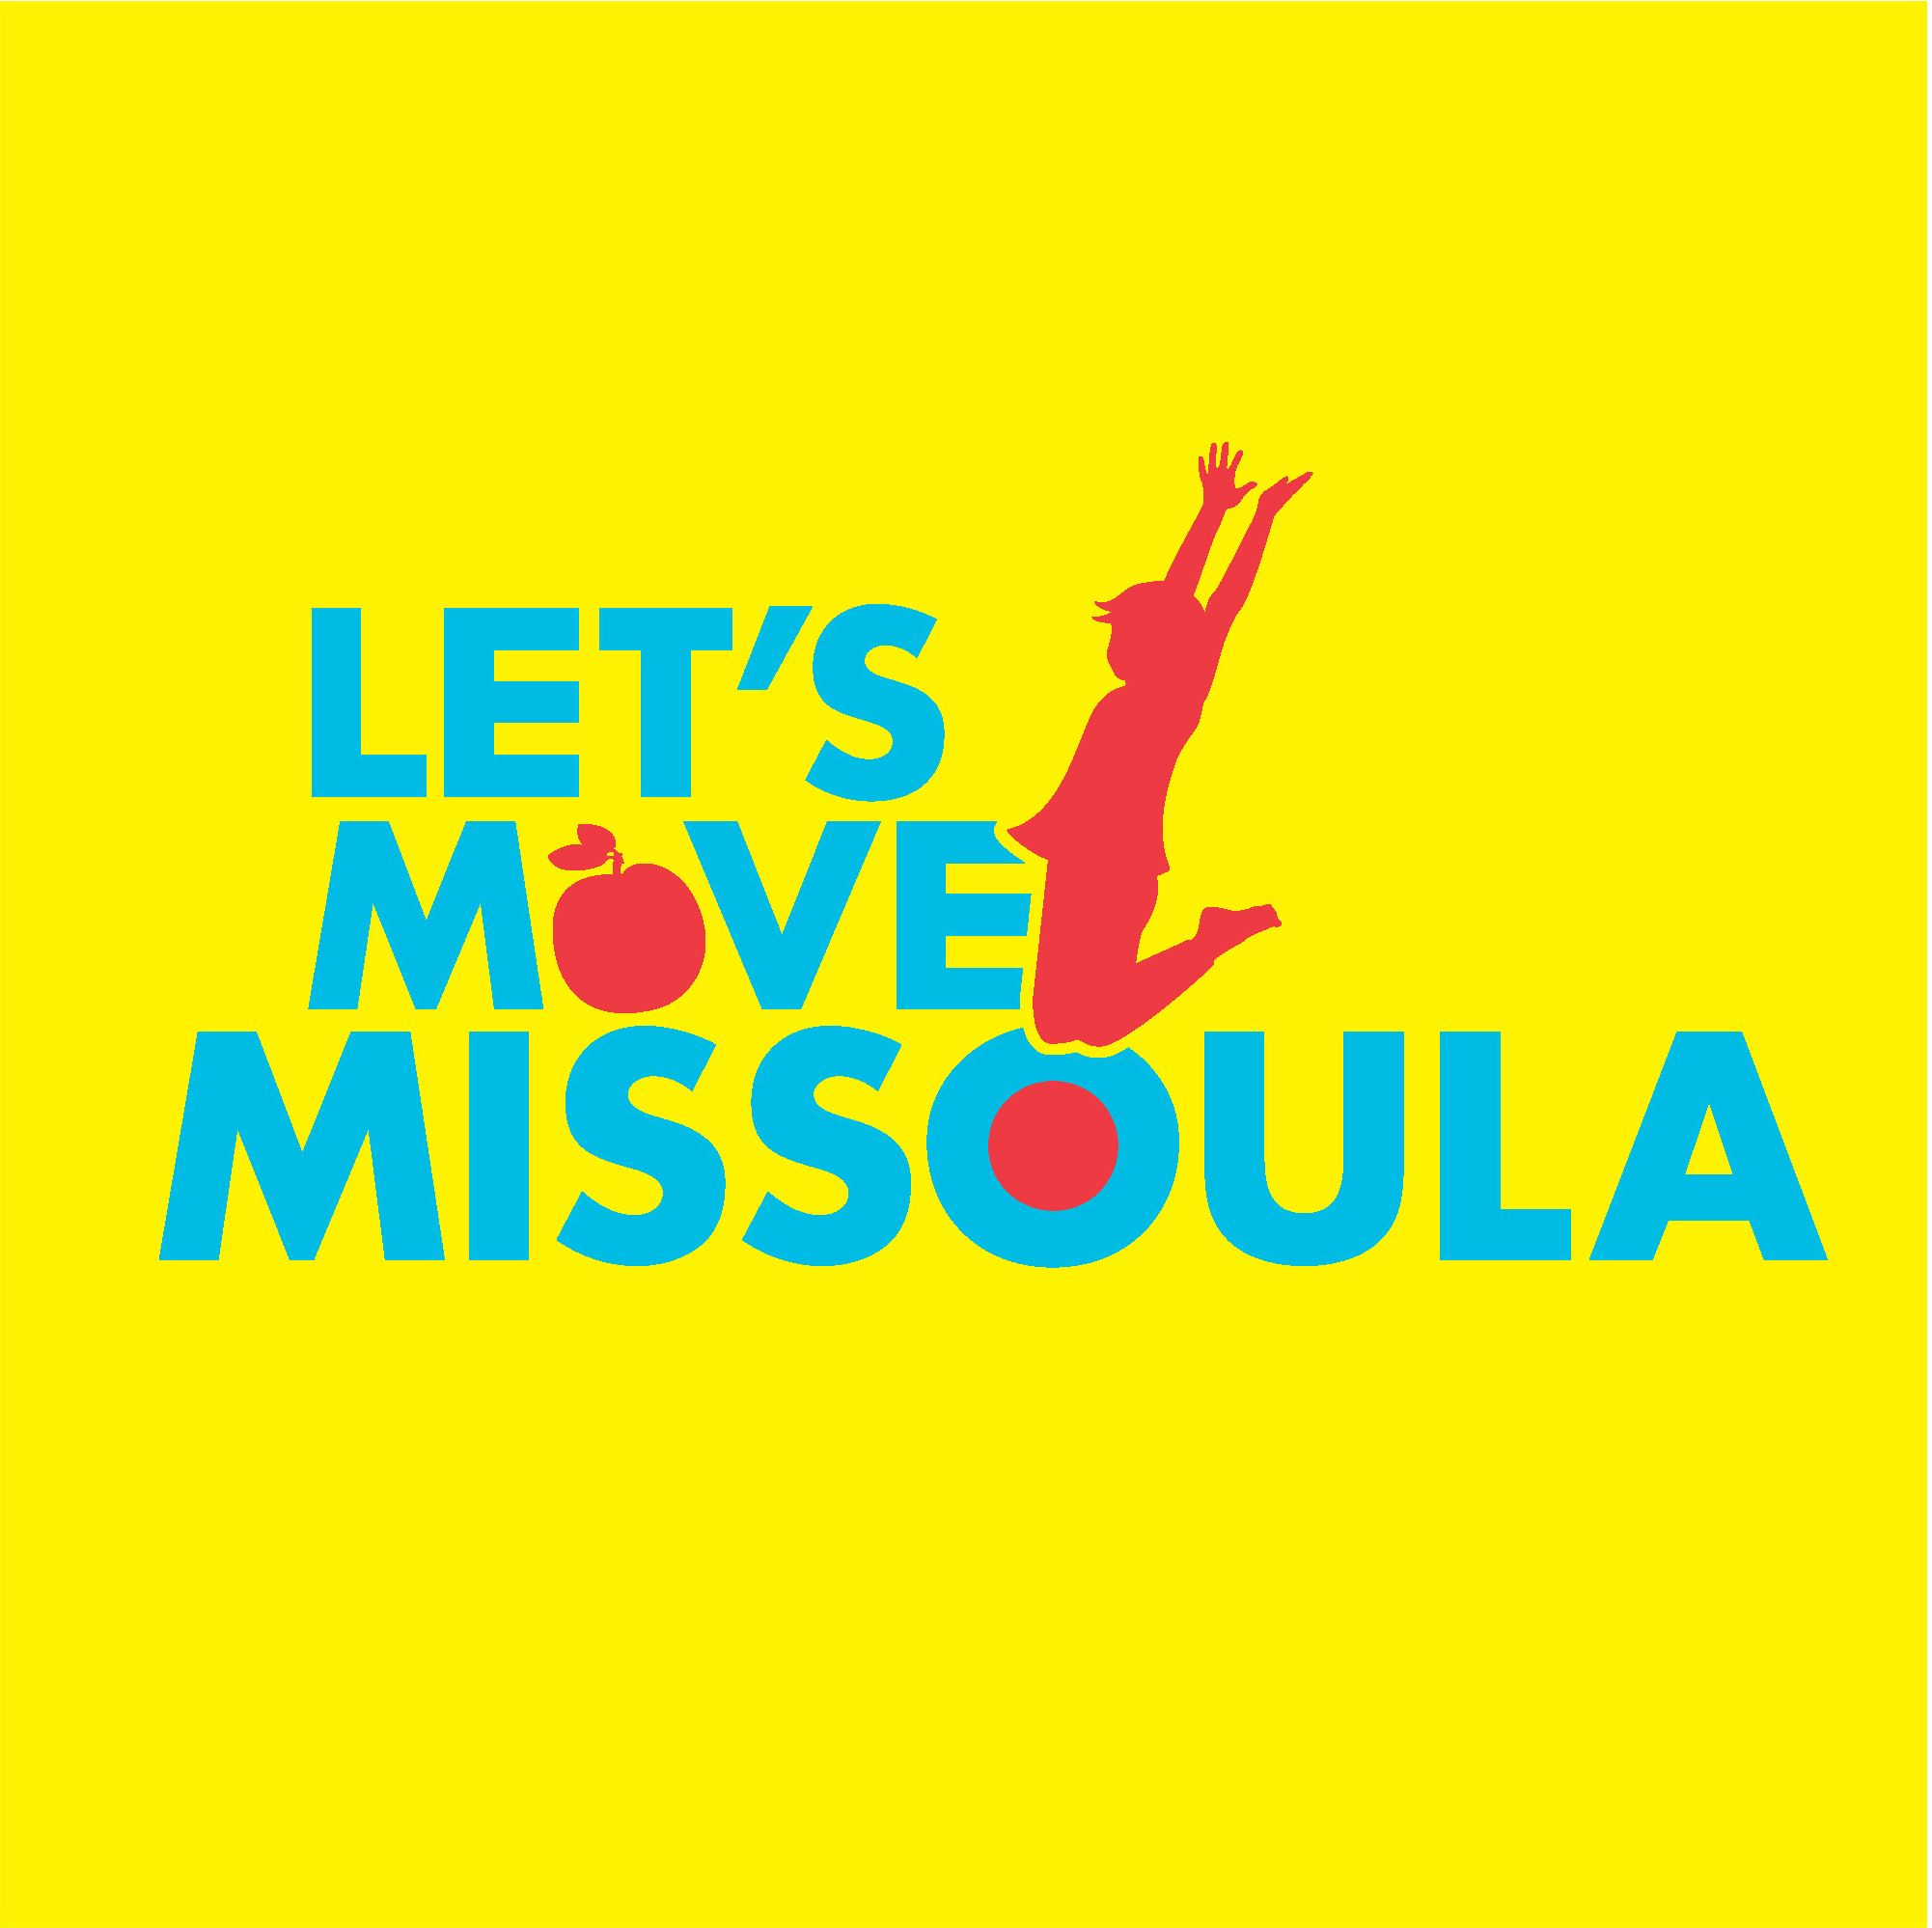 LETS MOVE MISSOULA LOGO